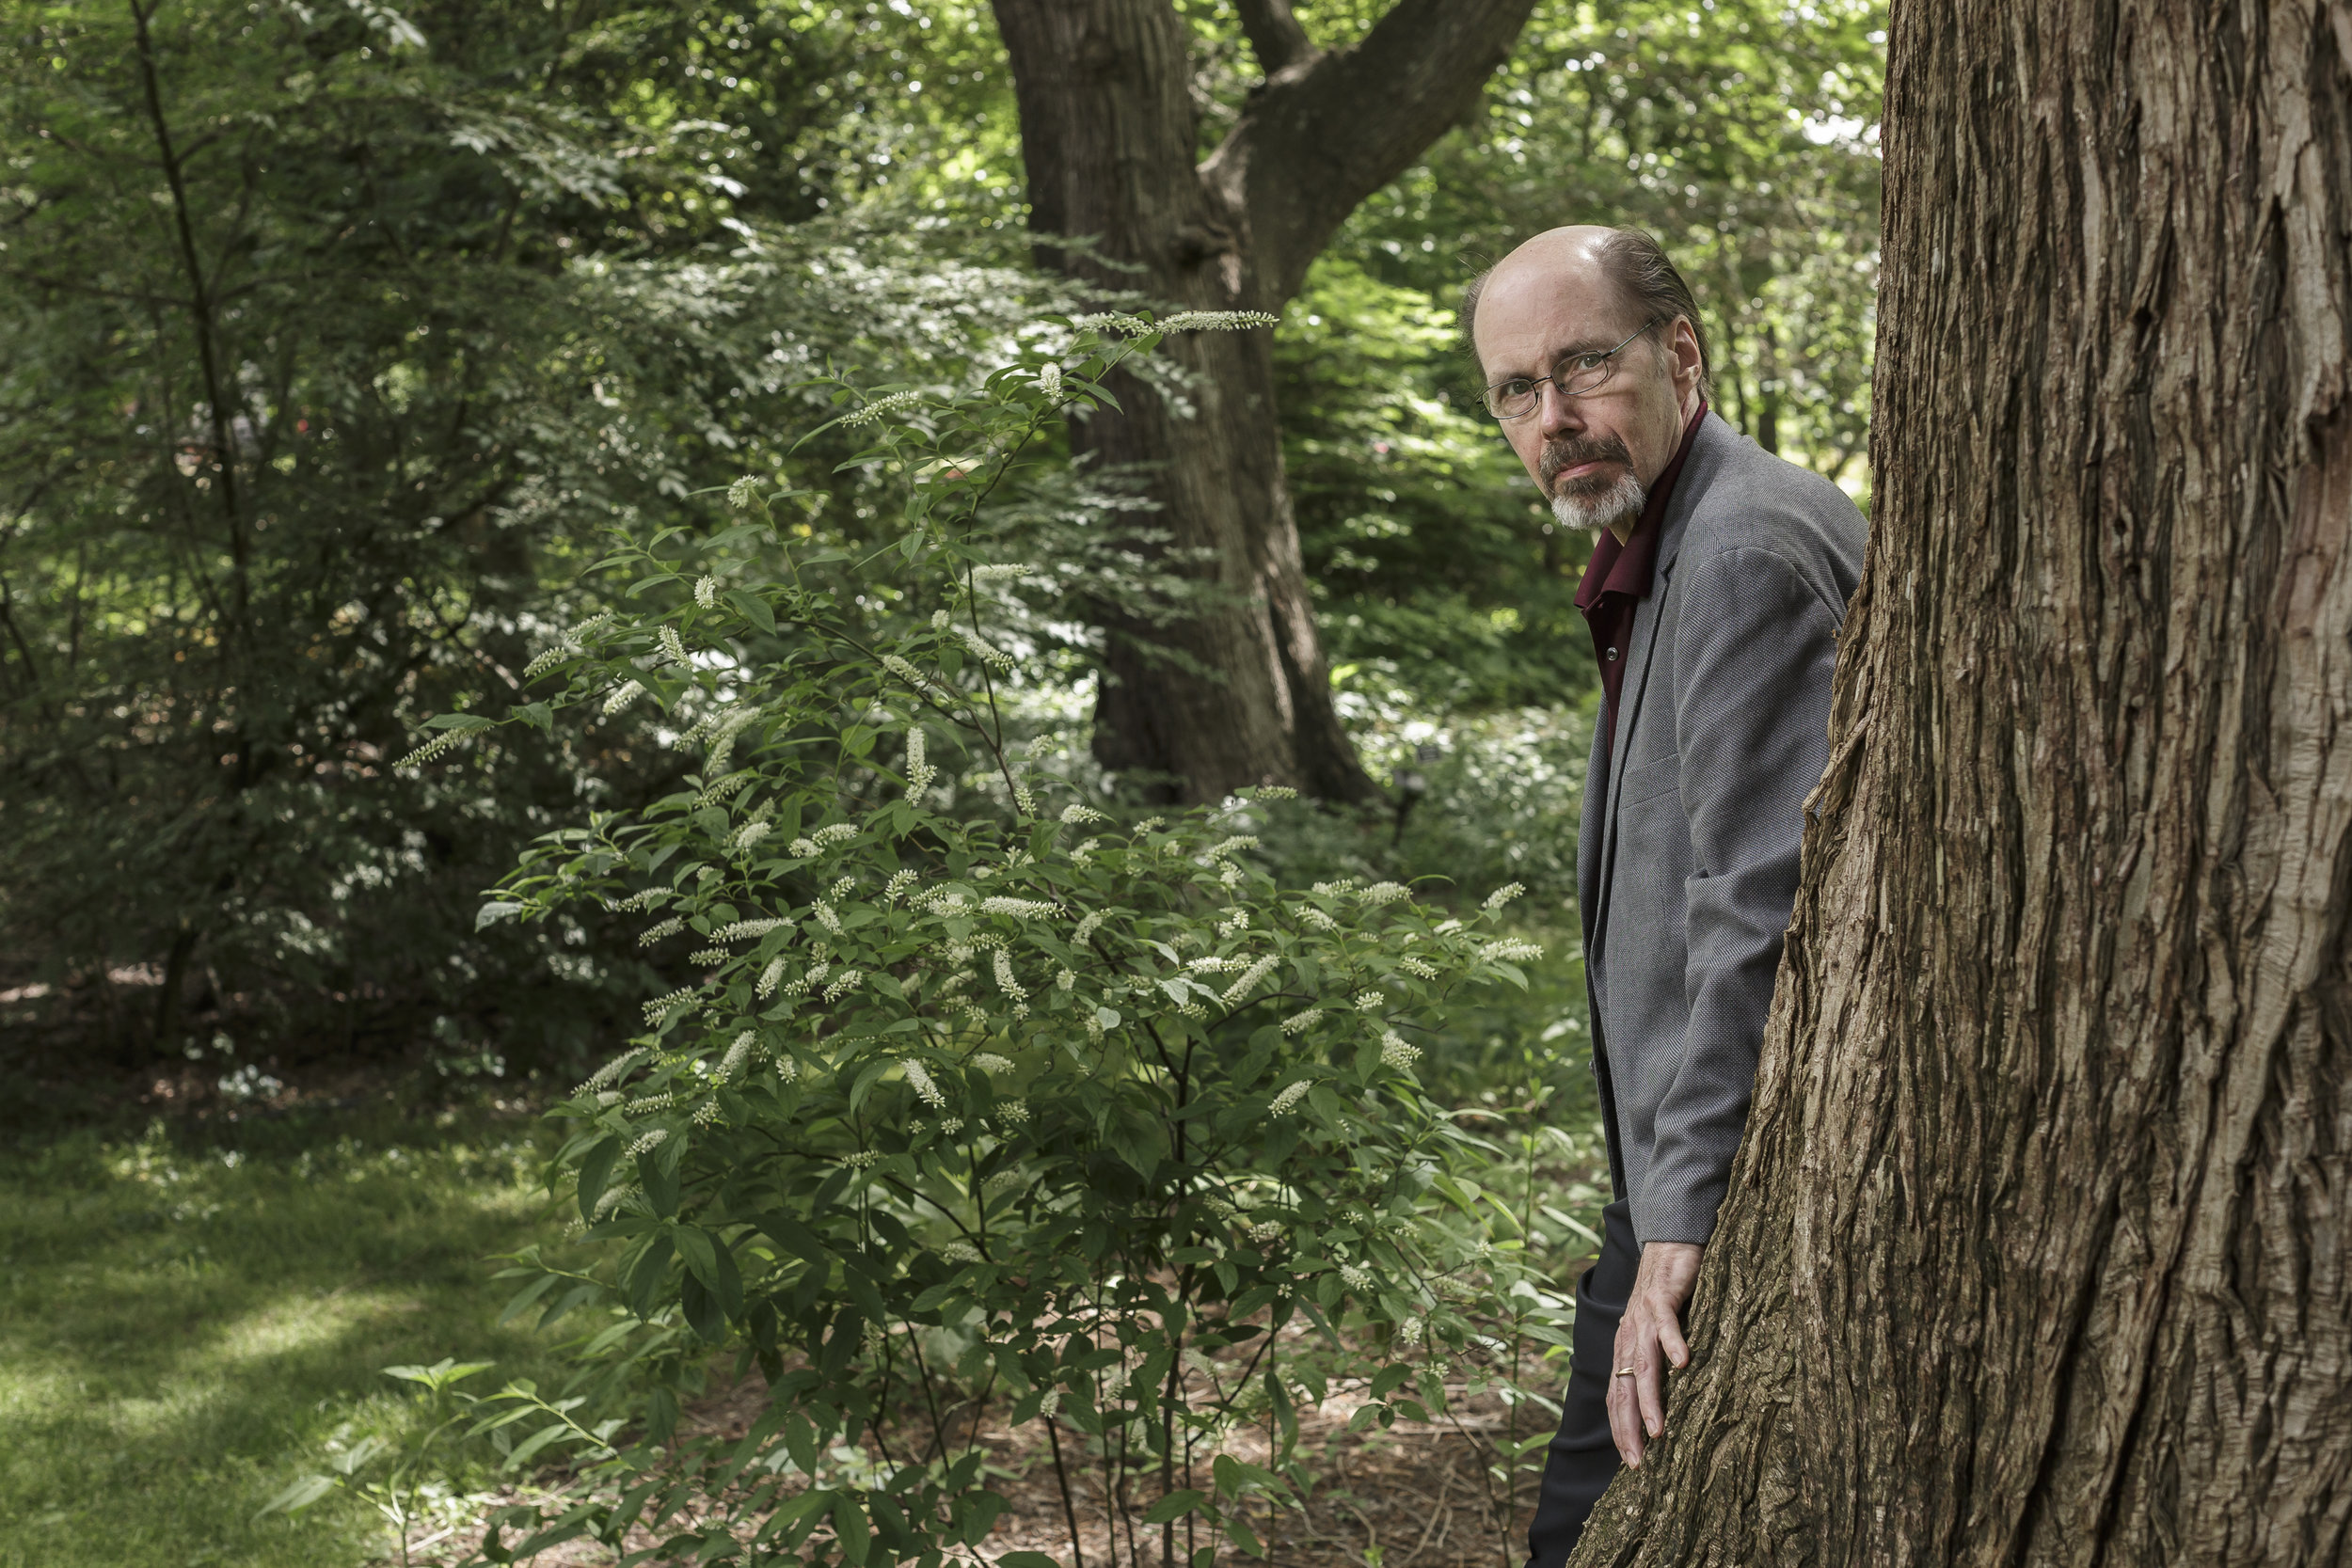 Best-selling murder mystery/crime novelist Jeffery Deaver at Coker Arboretum on the campus of The University of North Carolina at Chapel Hill. For The Financial Times.